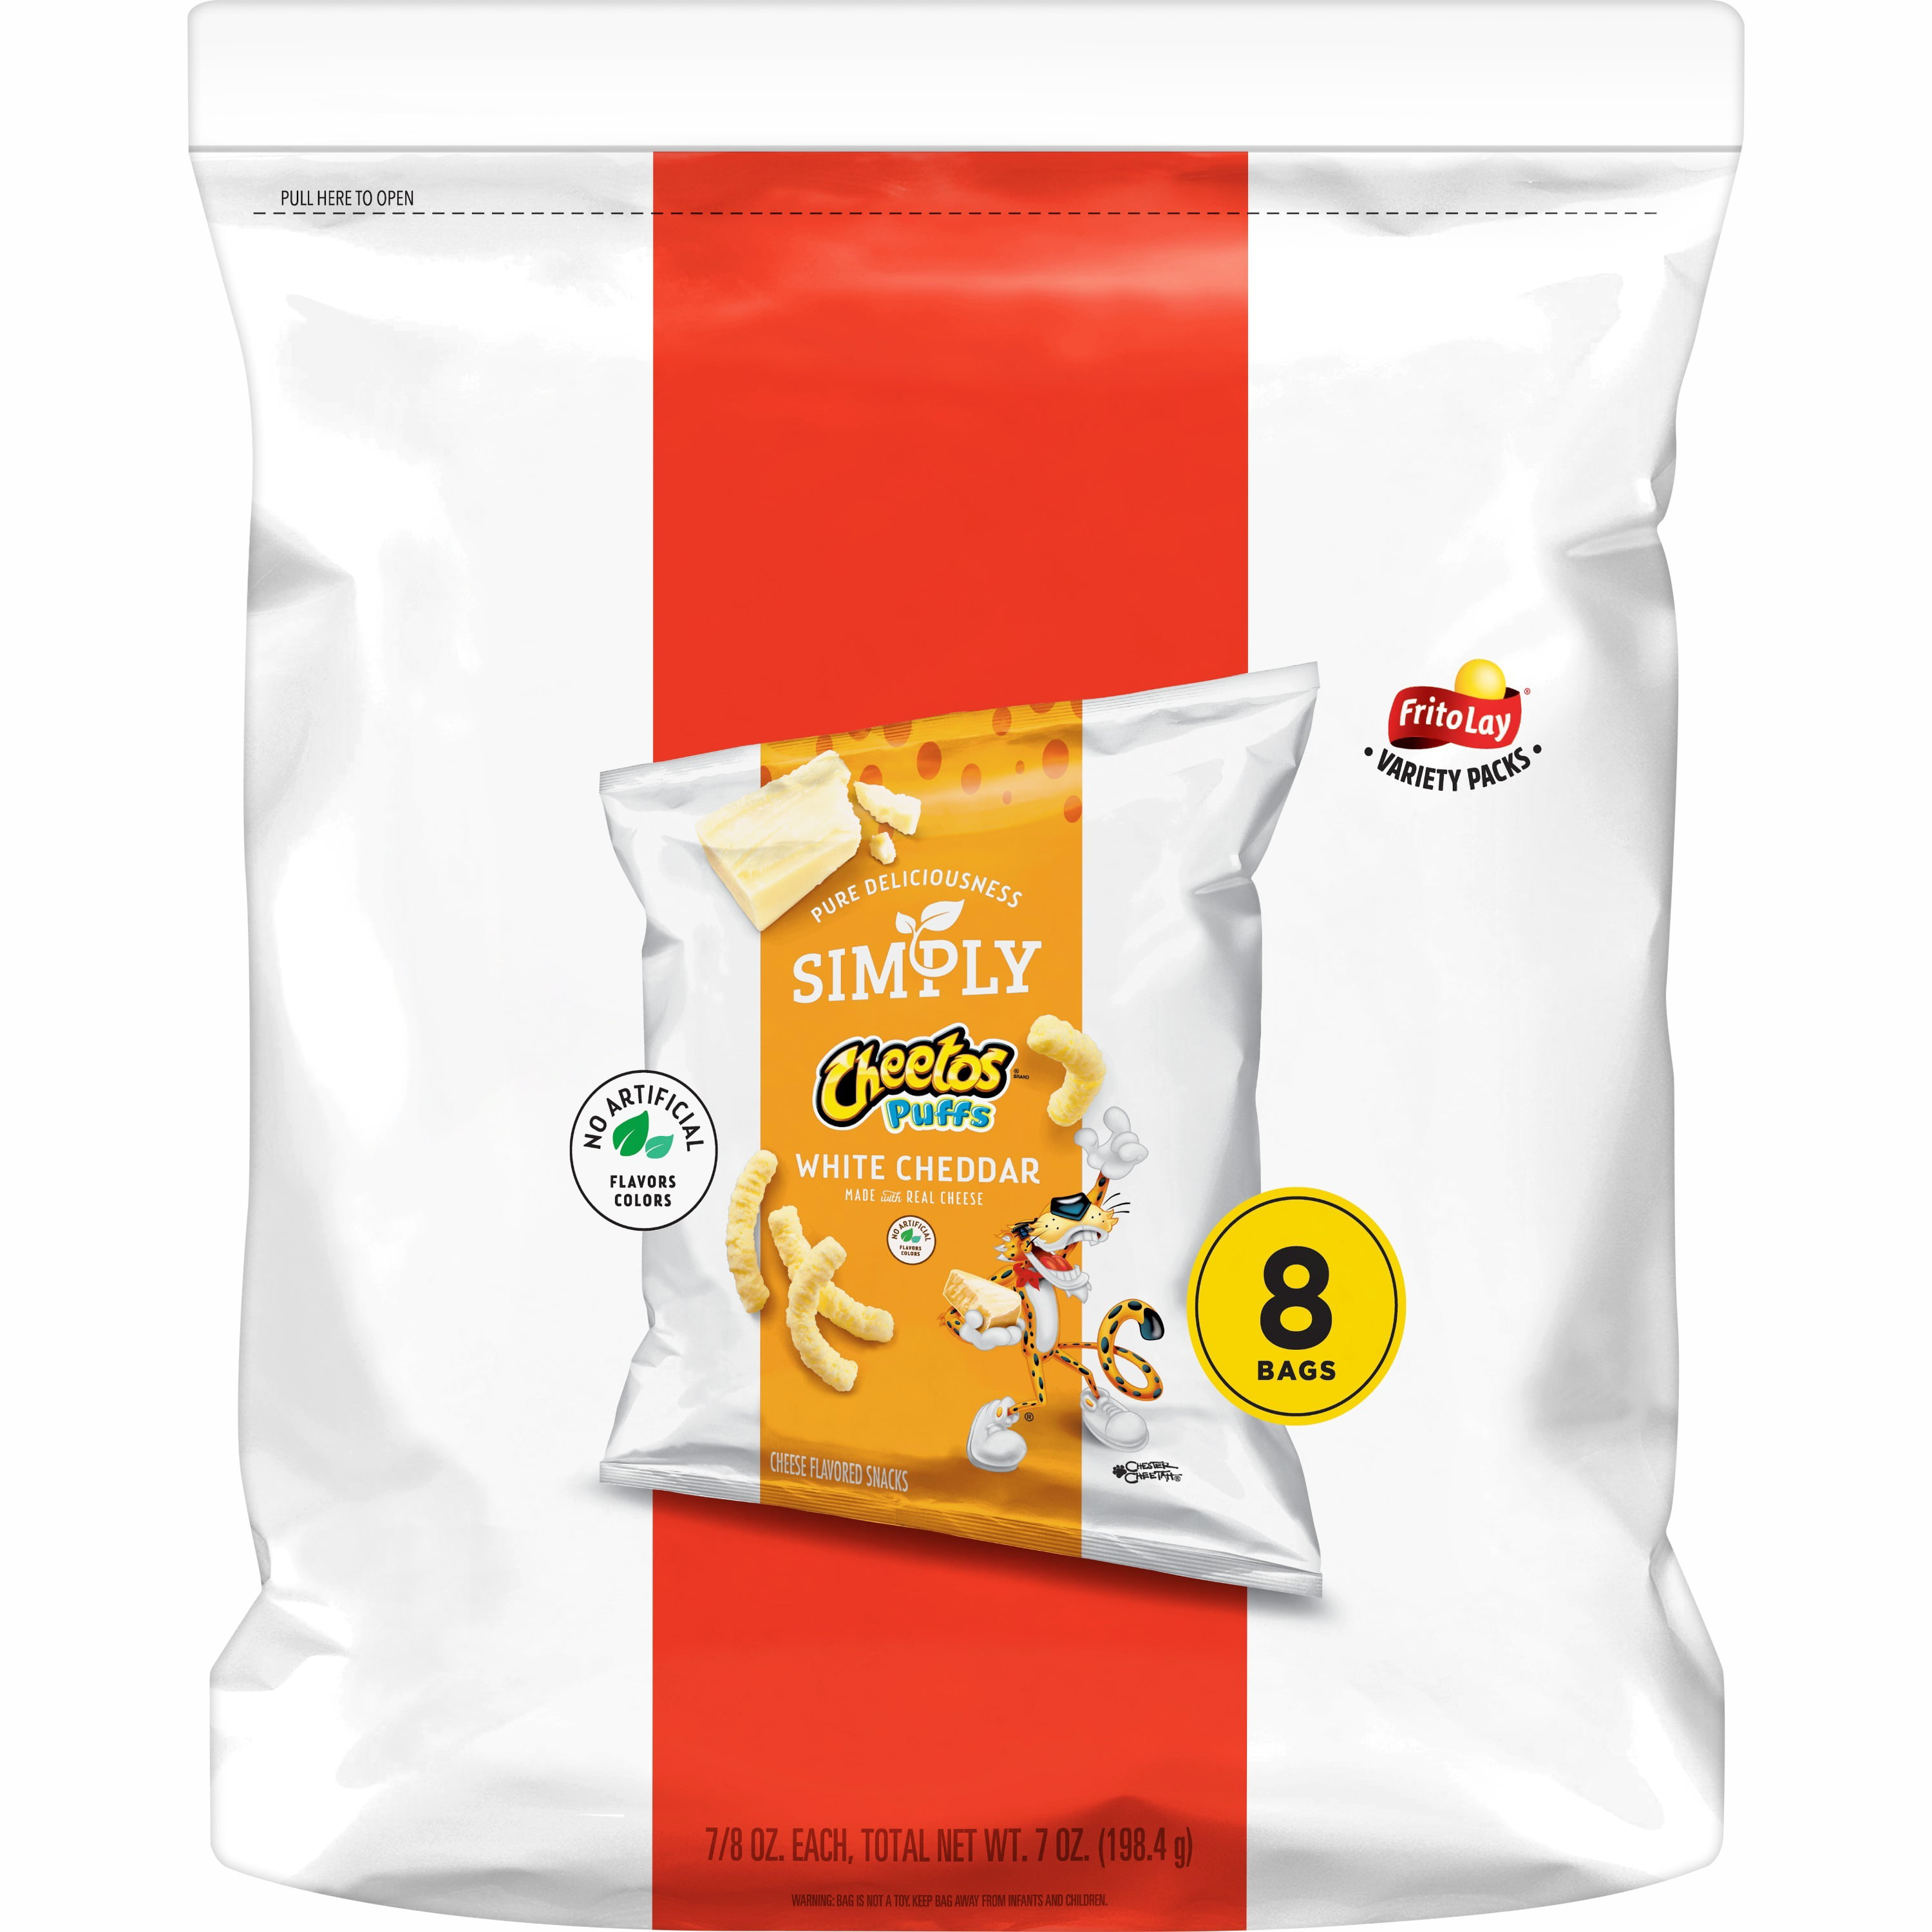 Simply Cheetos Puffs White Cheddar Cheese Flavored Snacks, 0.875 oz Bags, 8 Count